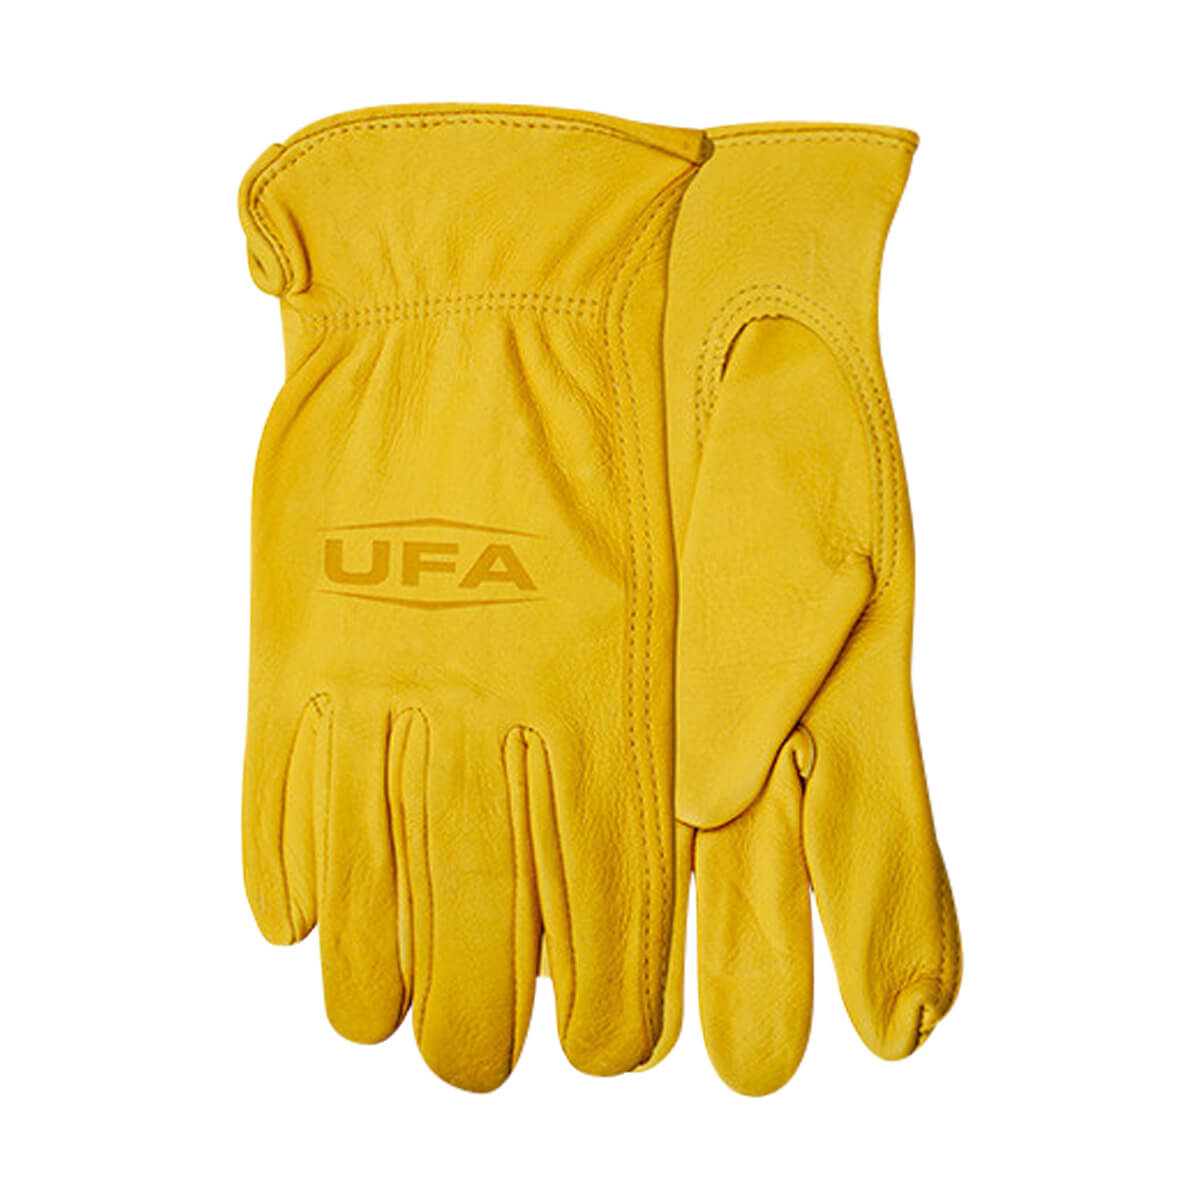 UFA Men's Lined Deerskin Gloves